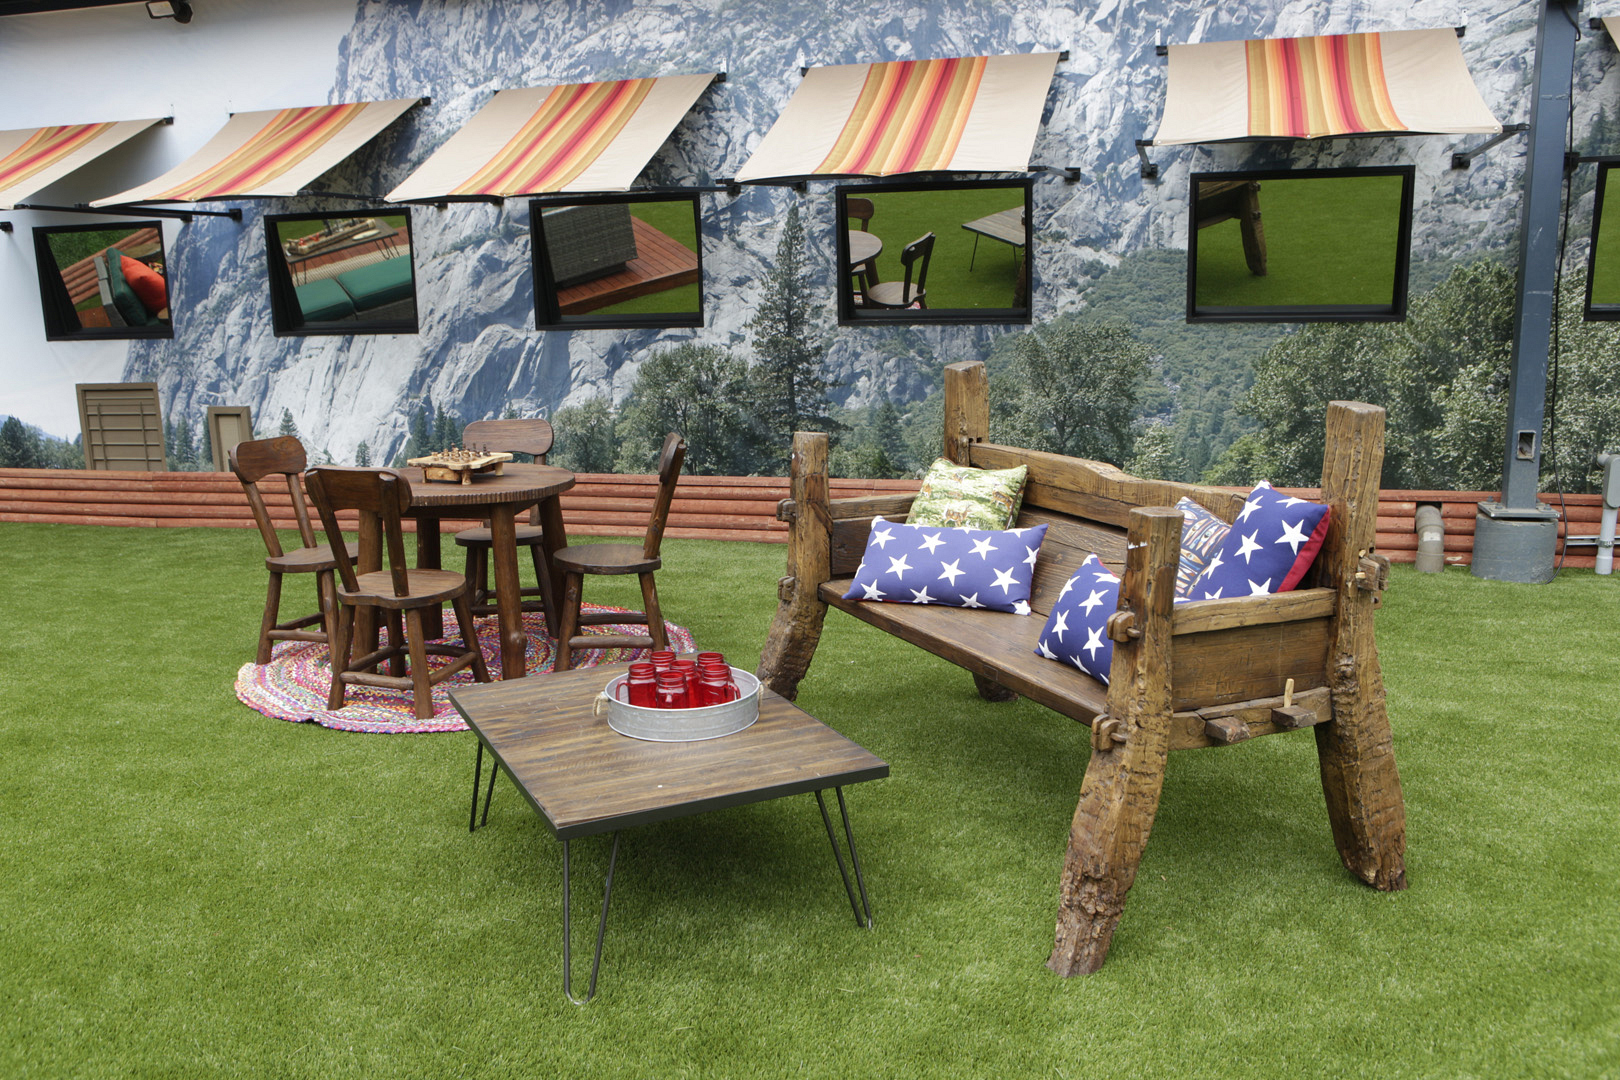 The Big Brother backyard boasts patriotic patterns and lots of picnic knick-knacks!